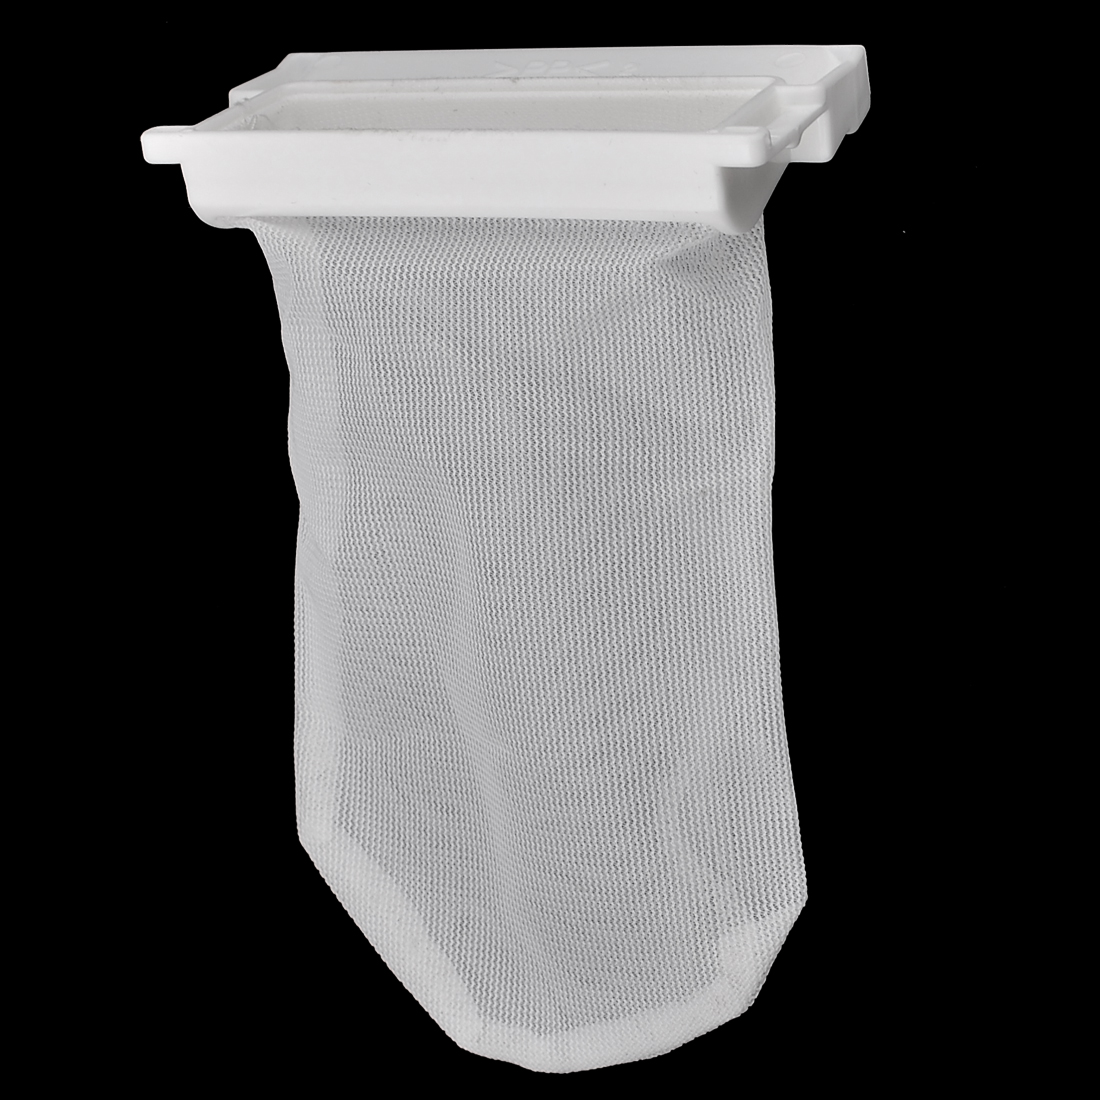 Washing Machine White Plastic Nylon Filter 11.5cm x 8cm Meshy Bag